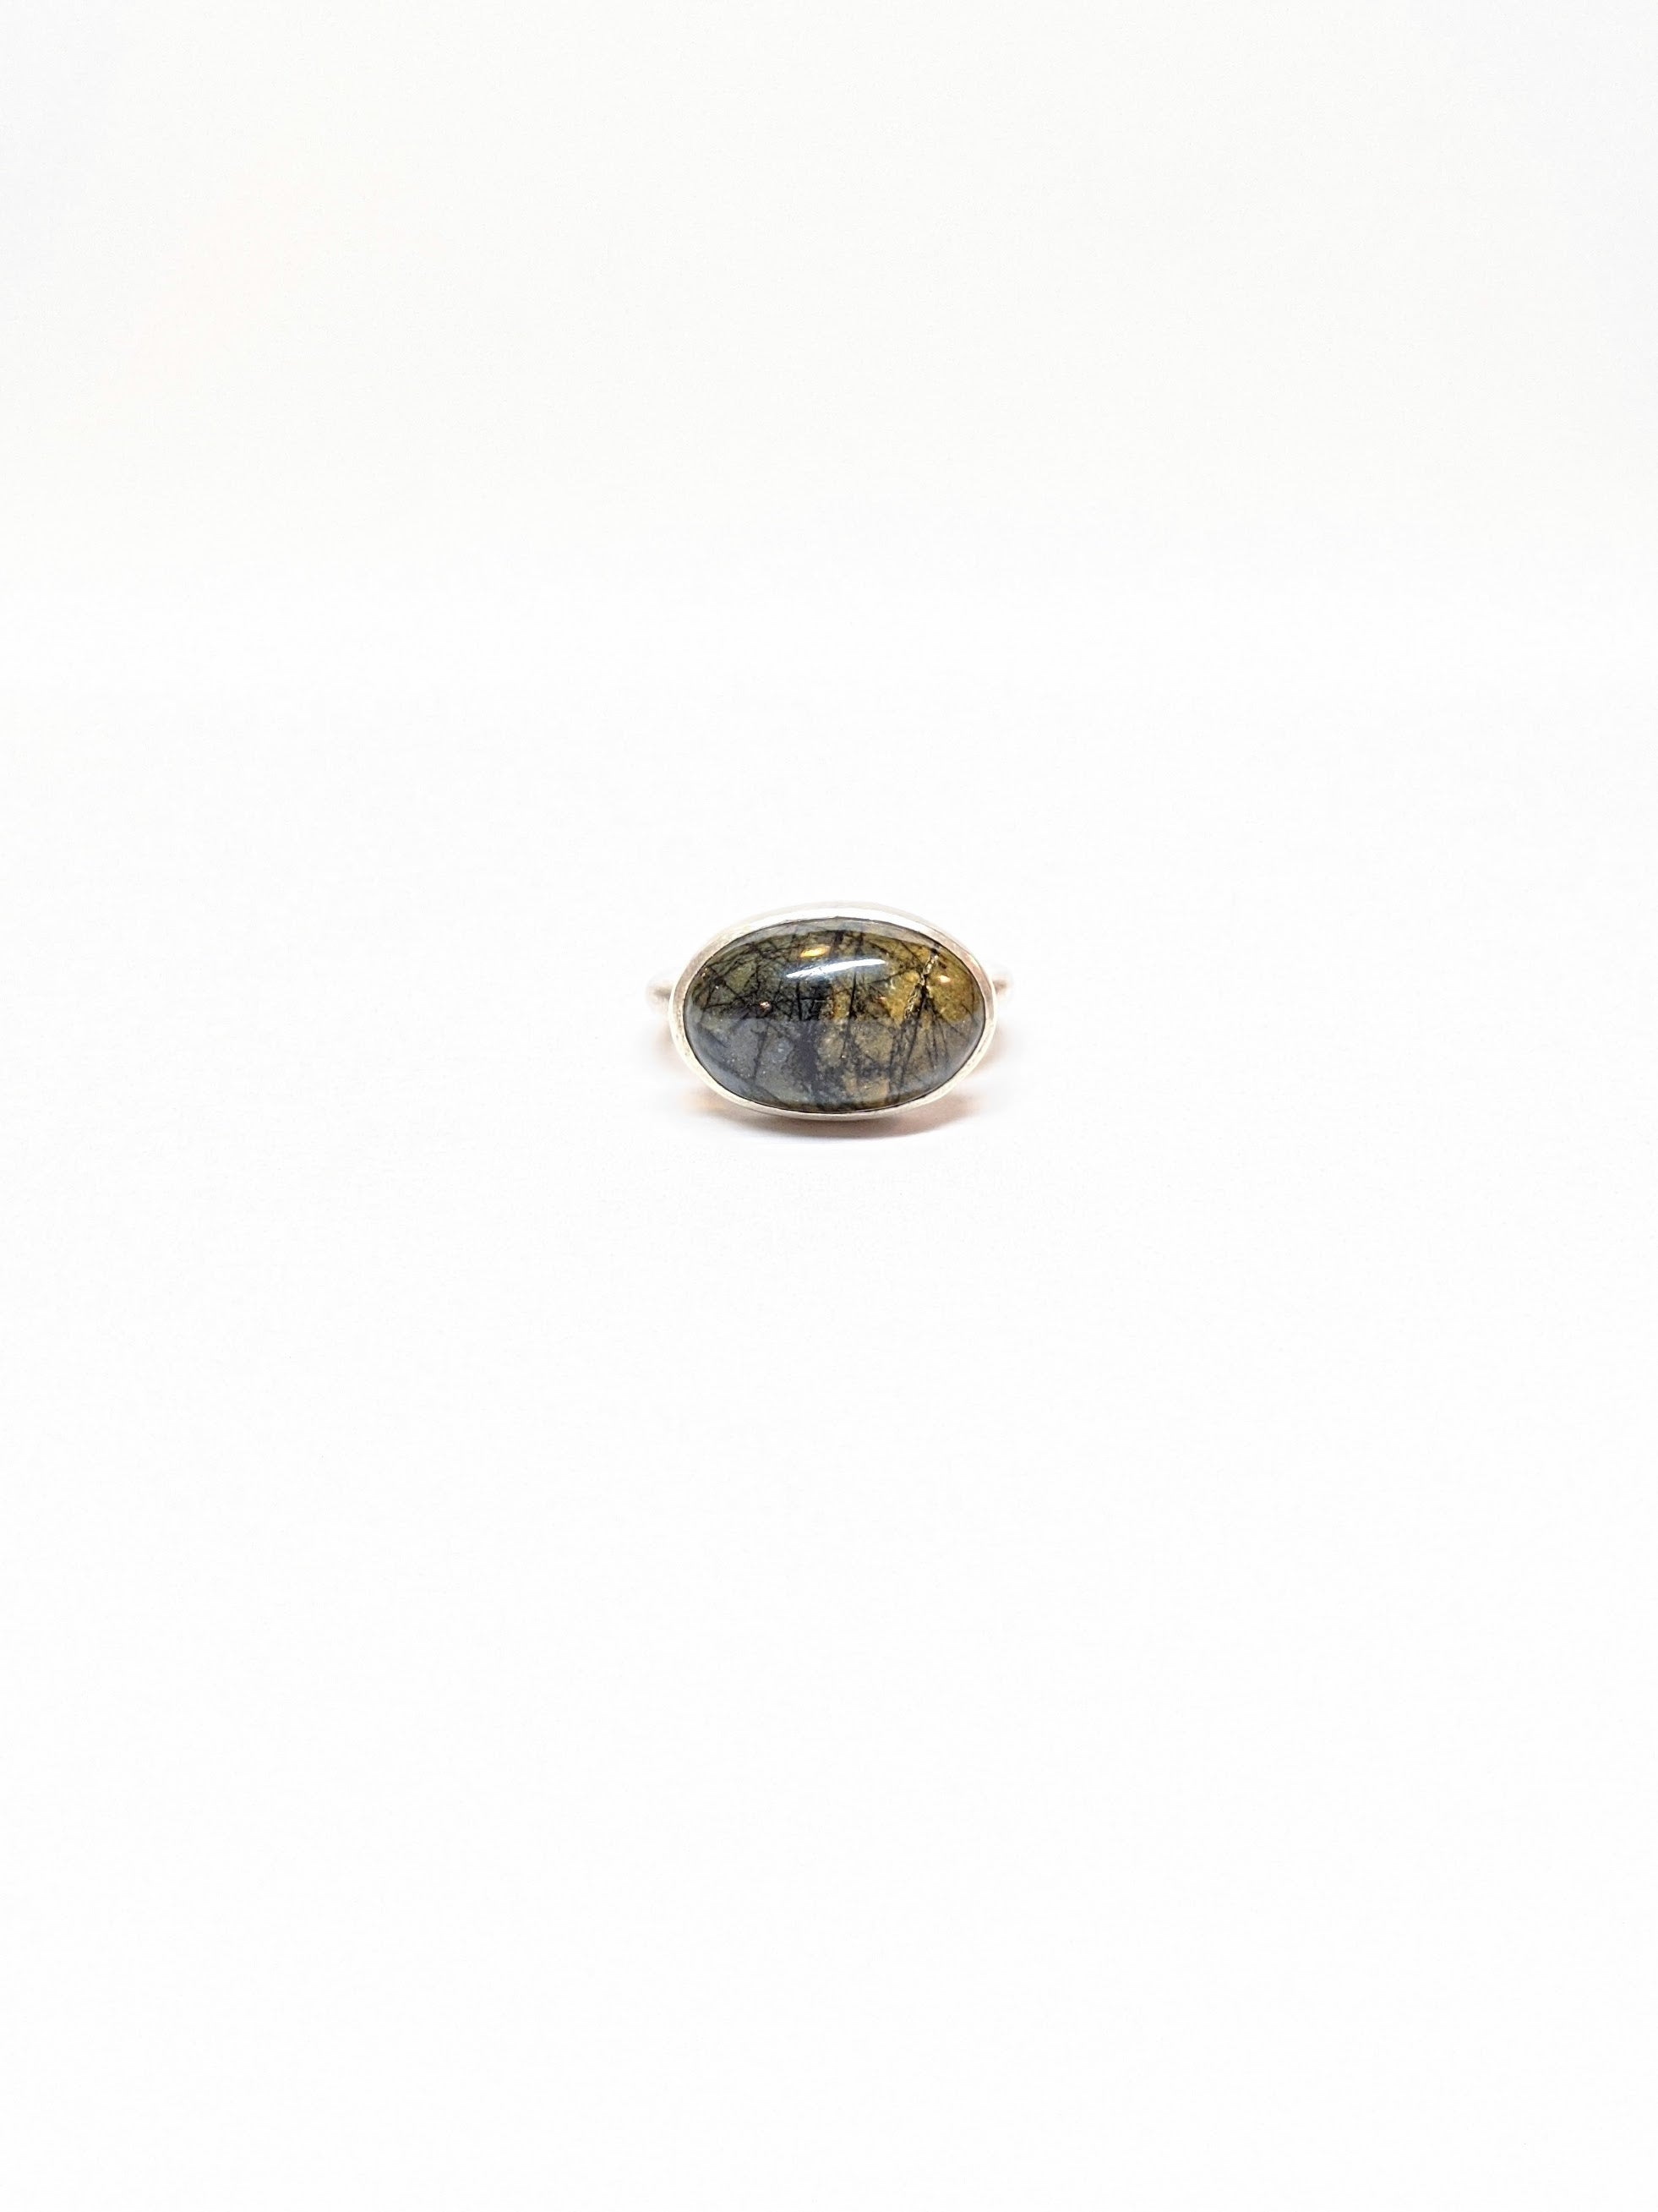 California Blue-Green Jasper Oval Ring - Size 7.5